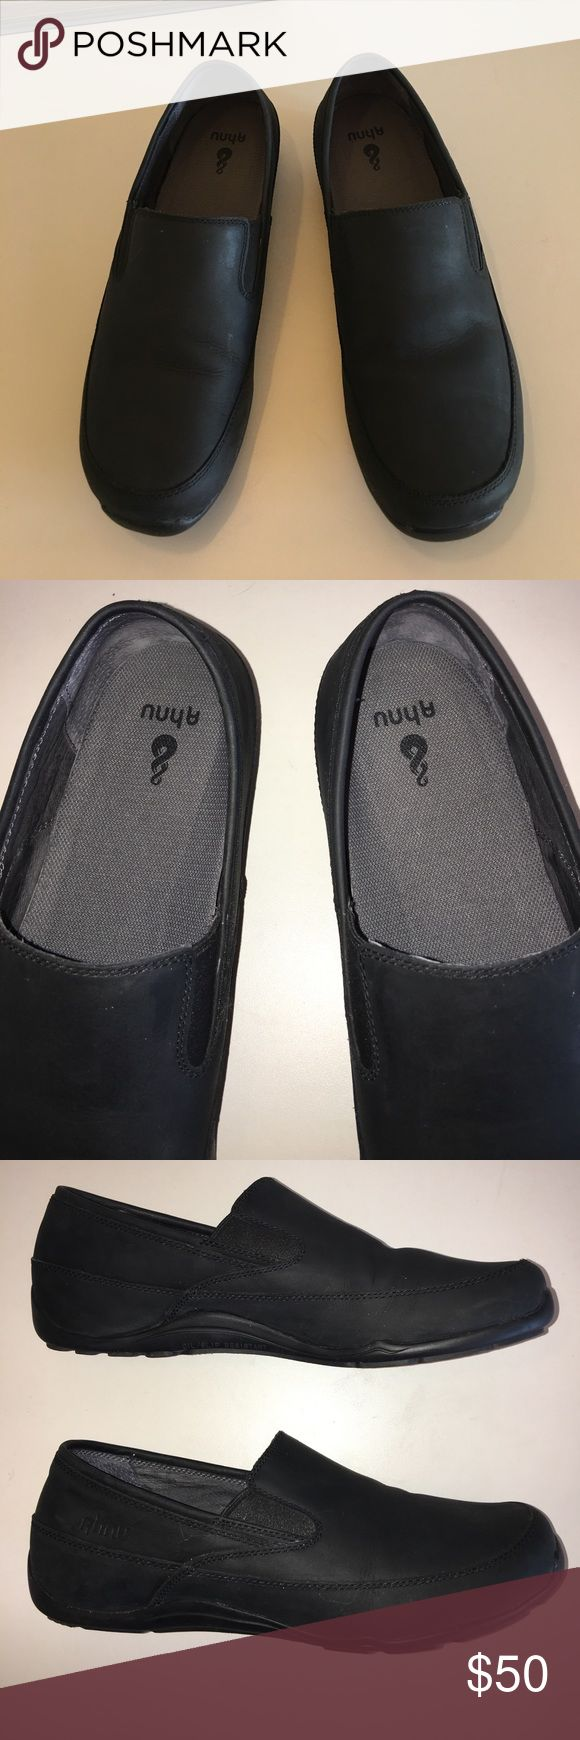 Ahnu Men's Jack Pro Casual Slip LoaferColor:Black Ahnu Men's Jack Pro Casual Slip On LoaferColor:Black  100% Leather • Imported • Rubber sole • Waterproof leather slip on • 3D-i drop line ethylene vinyl acetate wedge midsole for comfort • Slip resistant carbon rubber and tread pattern designed for wet and oily surfaces • Moisture wicking synthetic mesh amd pigskin lining for comfort and breathability • Internal nylon shank for support Ahnu pro Shoes Loafers & Slip-Ons